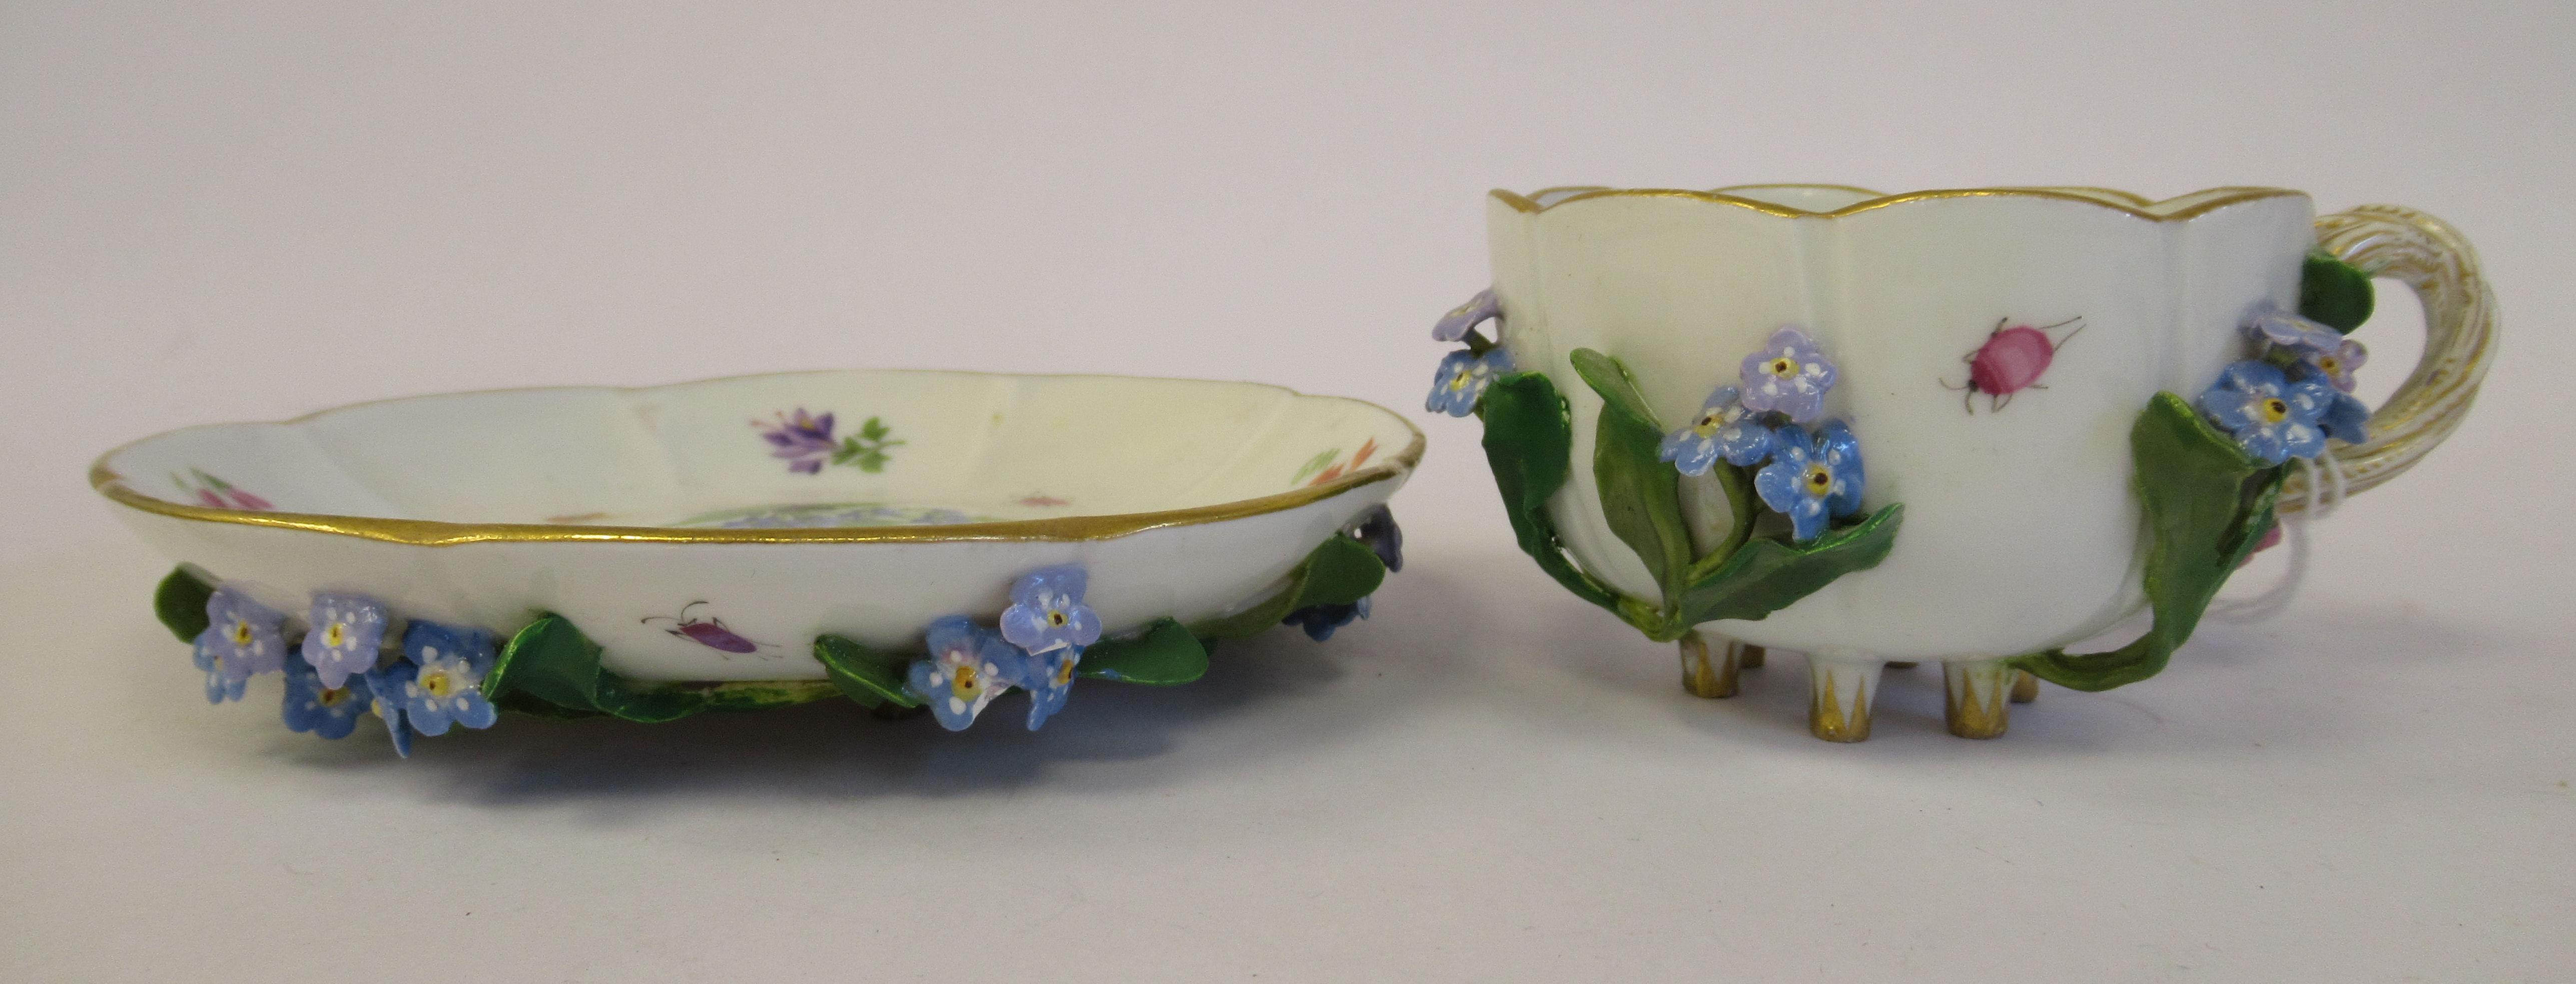 A 19thC Meissen porcelain cup and saucer, having an entwined twig handle, decorated with encrusted - Image 3 of 10